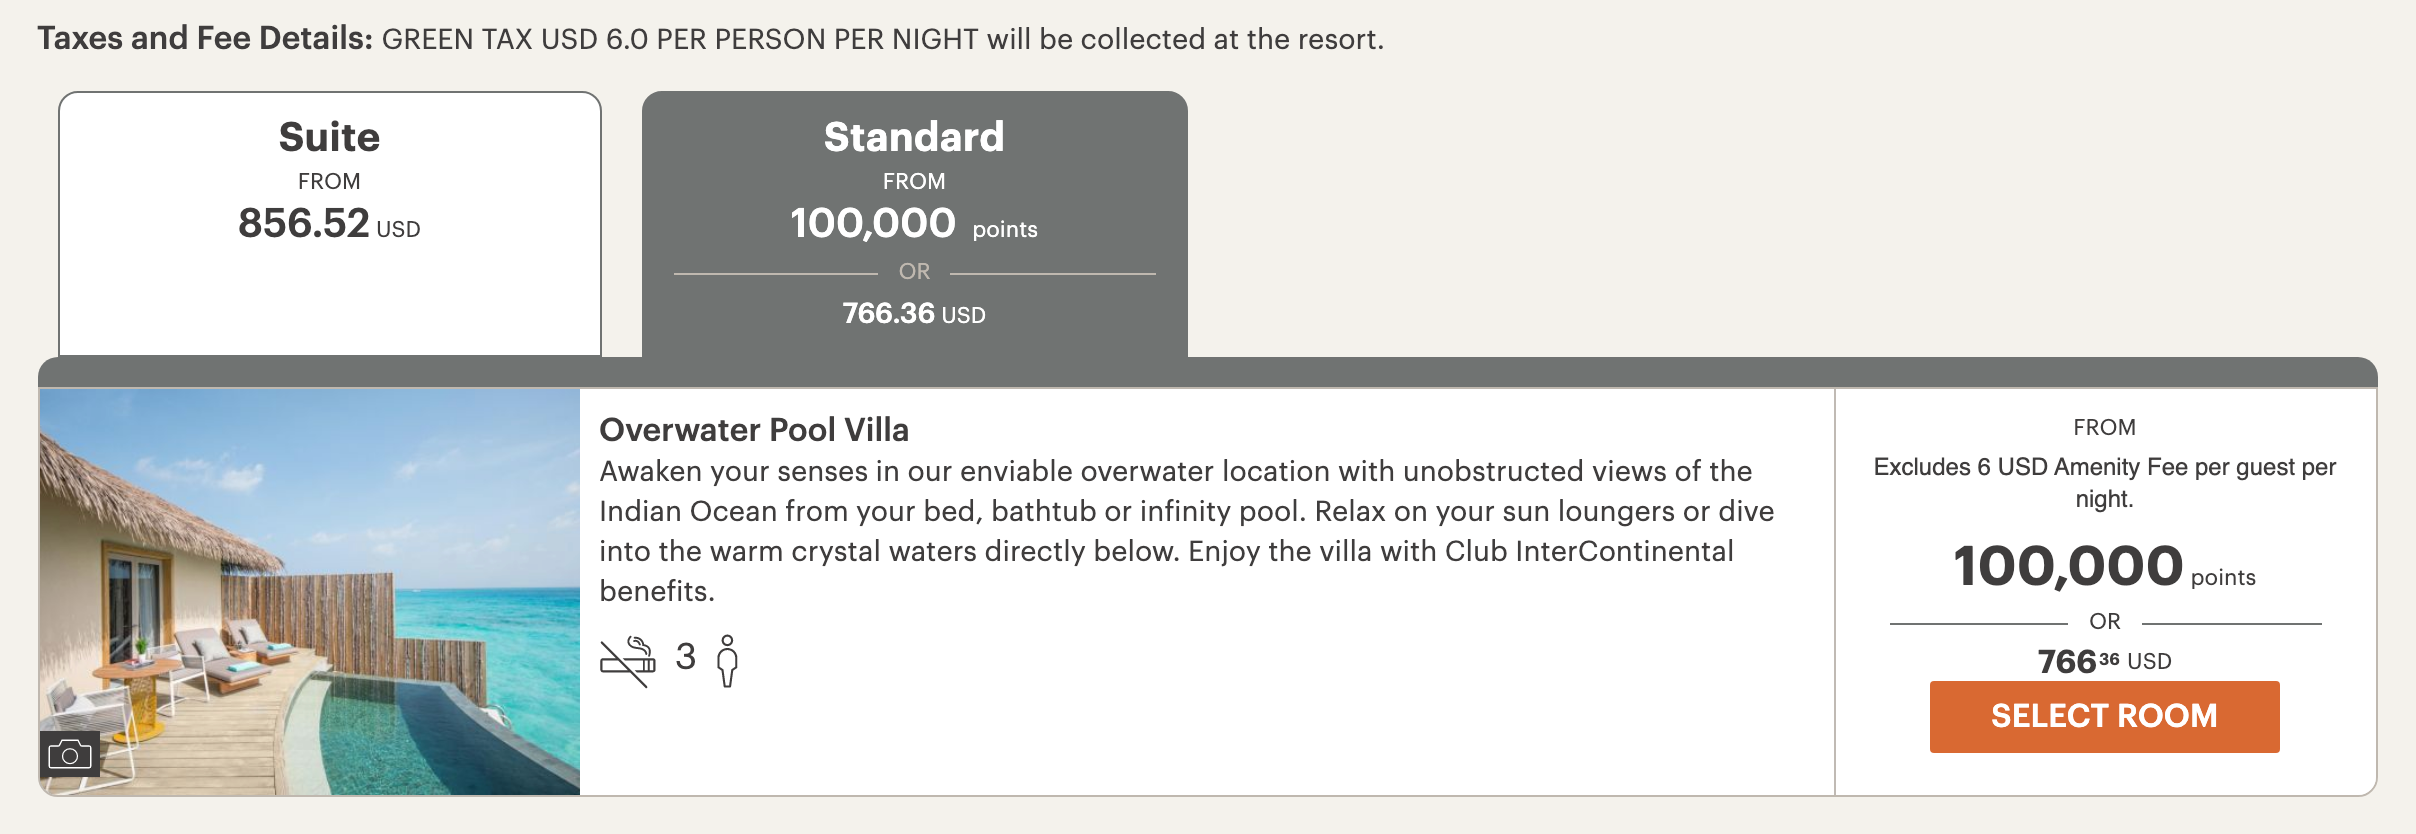 ihg booking maldives - AMAZING DEAL - $500 a night water villa with pool at the Intercontinental Maldives!